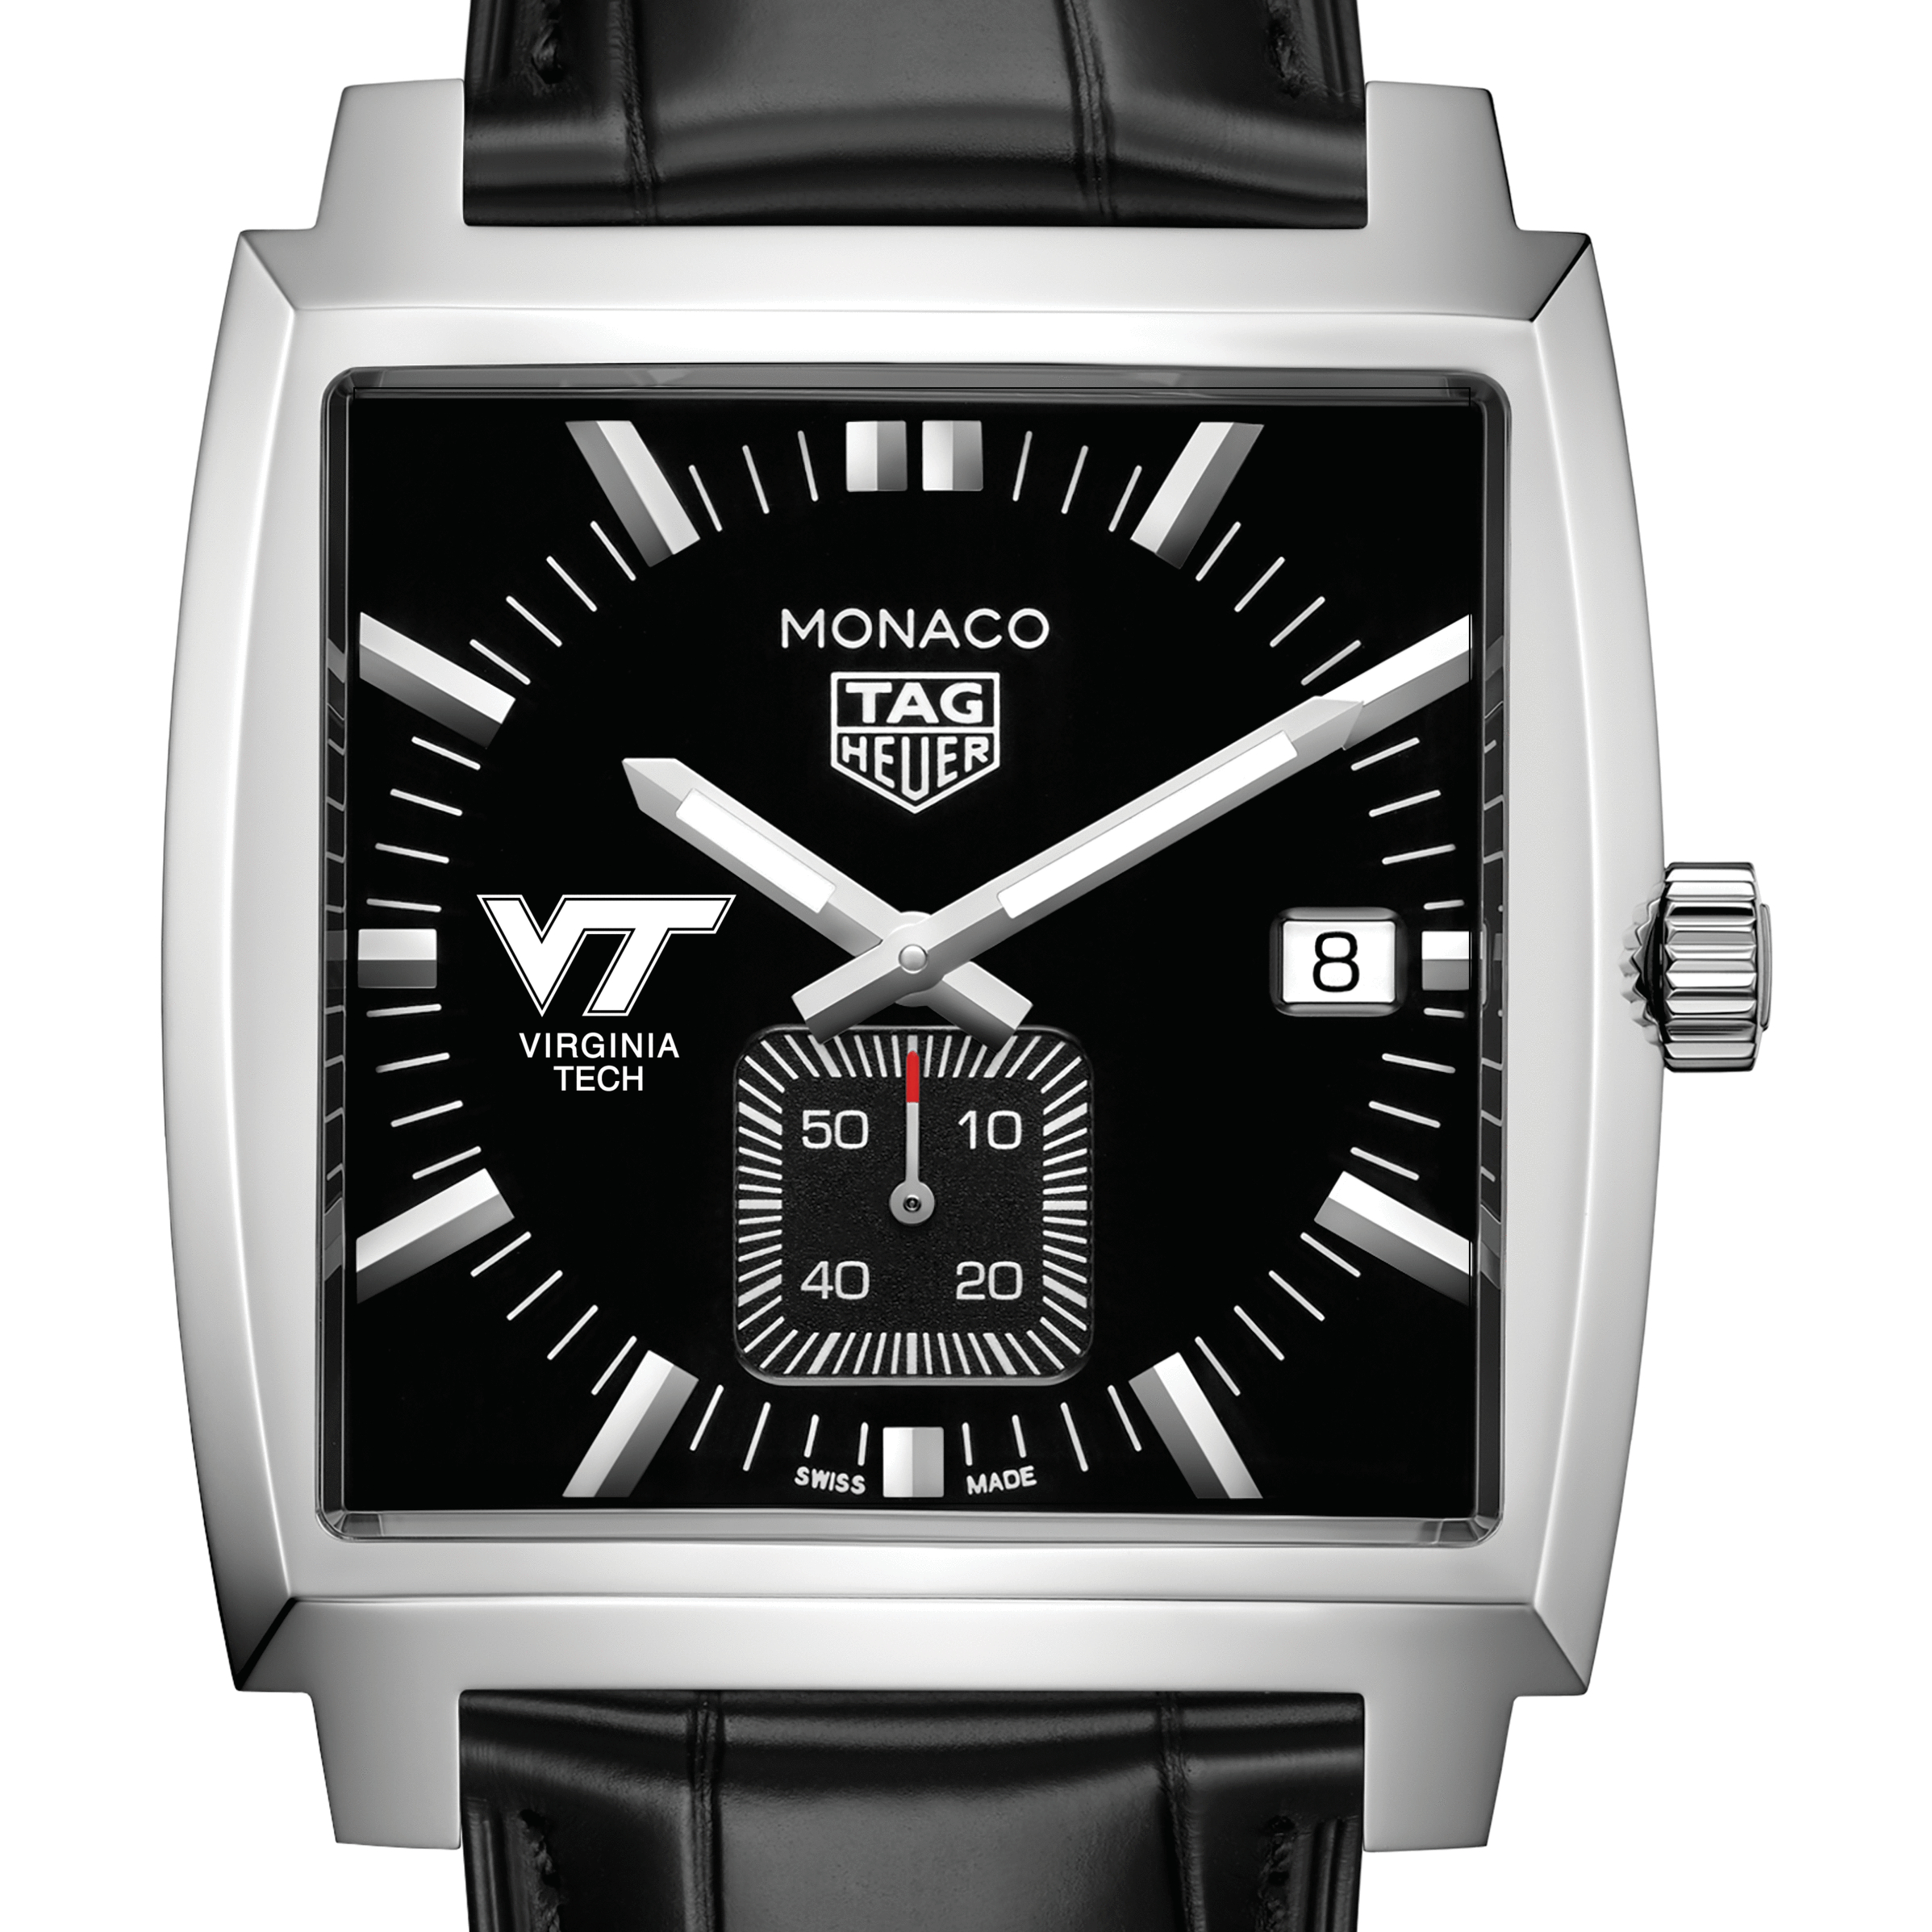 Virginia Tech TAG Heuer Monaco with Quartz Movement for Men